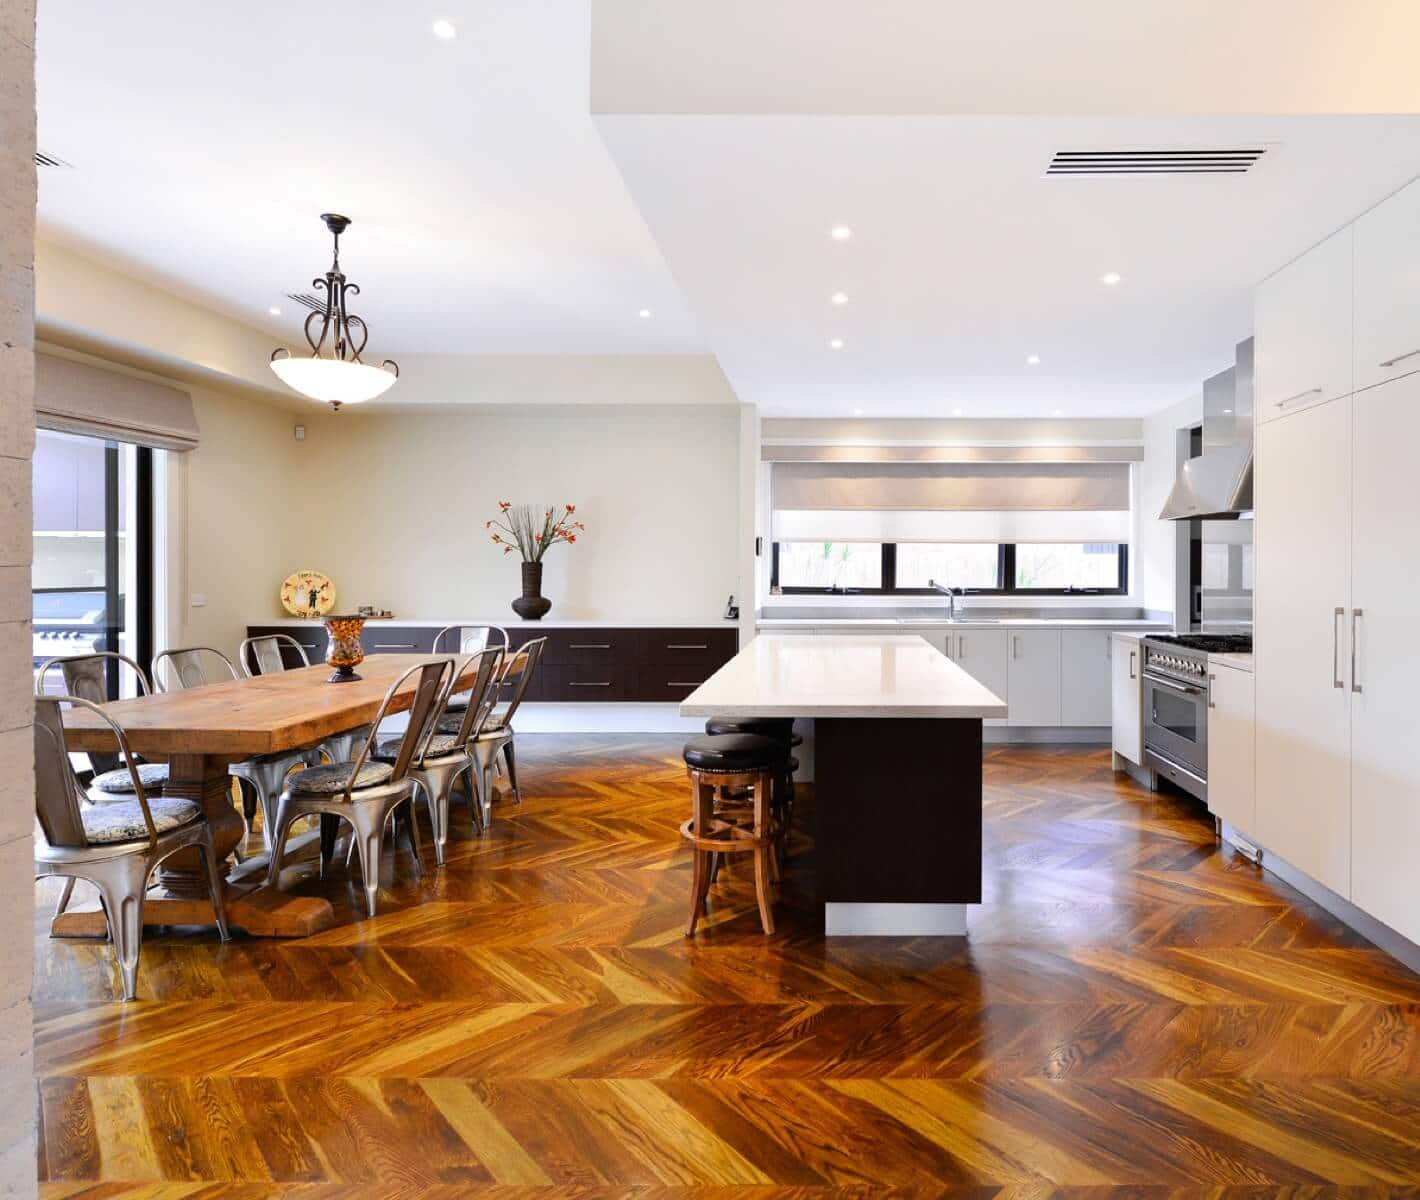 Prestige Home Builder in Melbourne